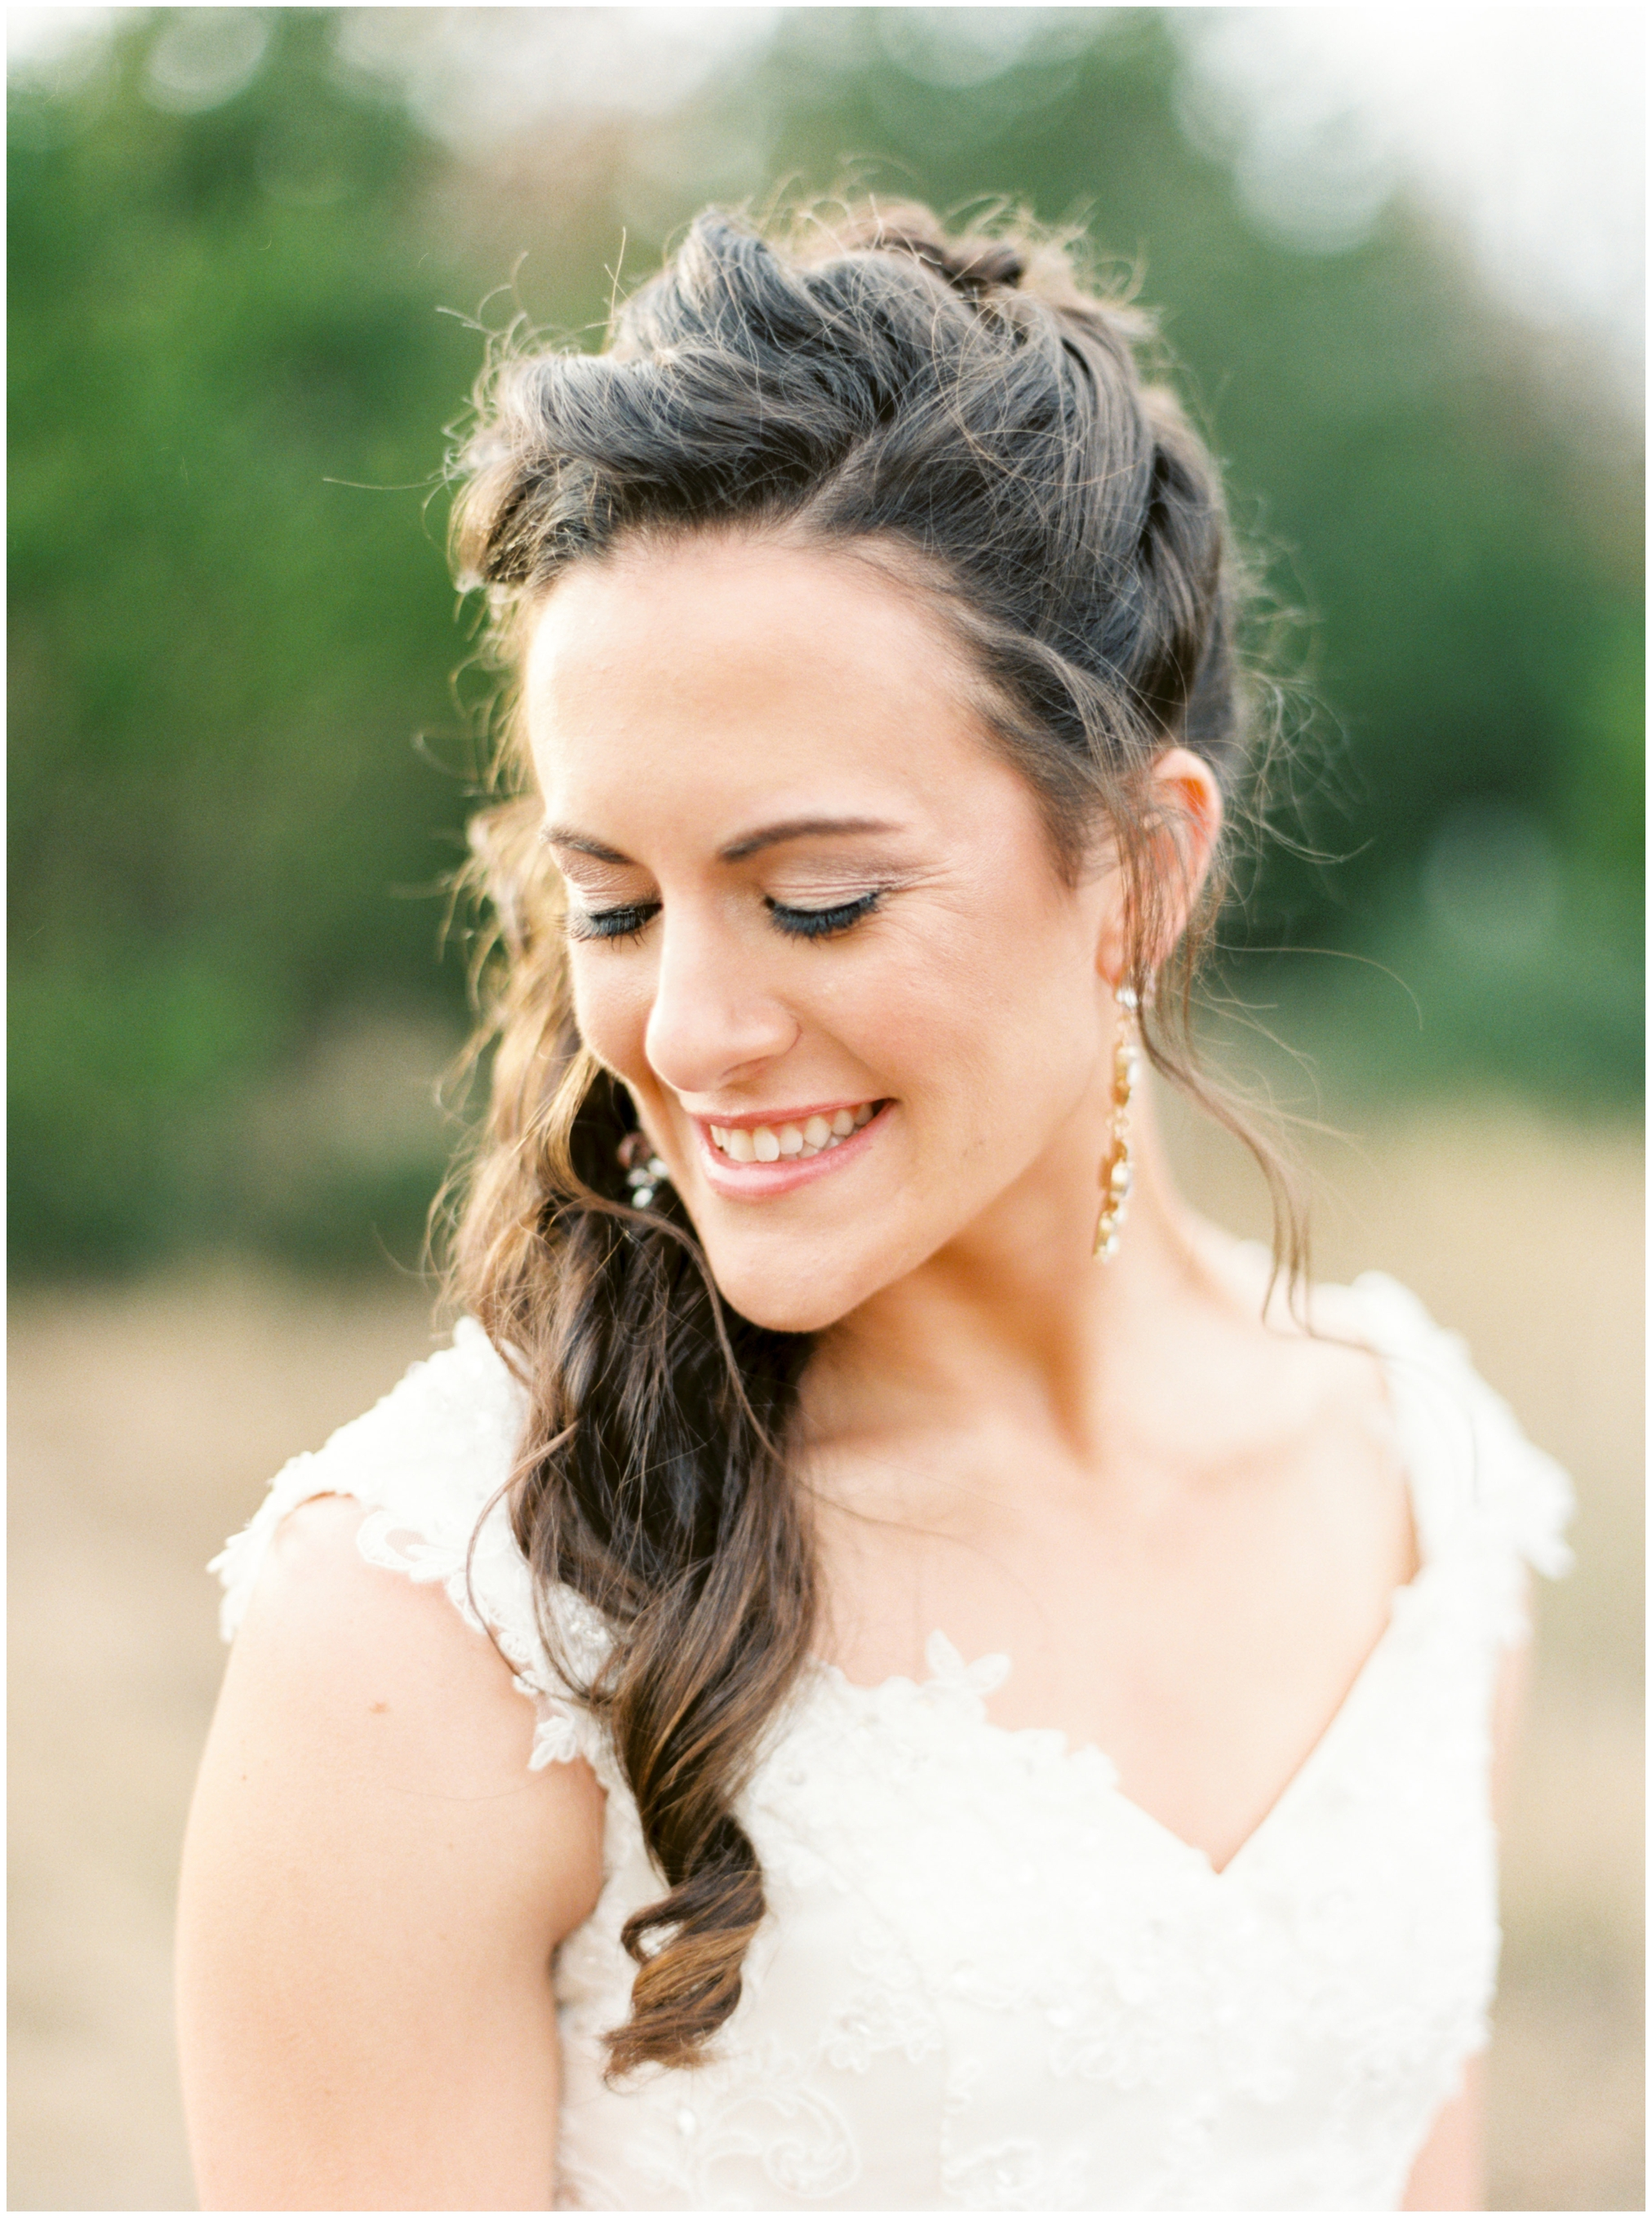 Sarah Best Photography - Emily's Bridals-137_STP.jpg